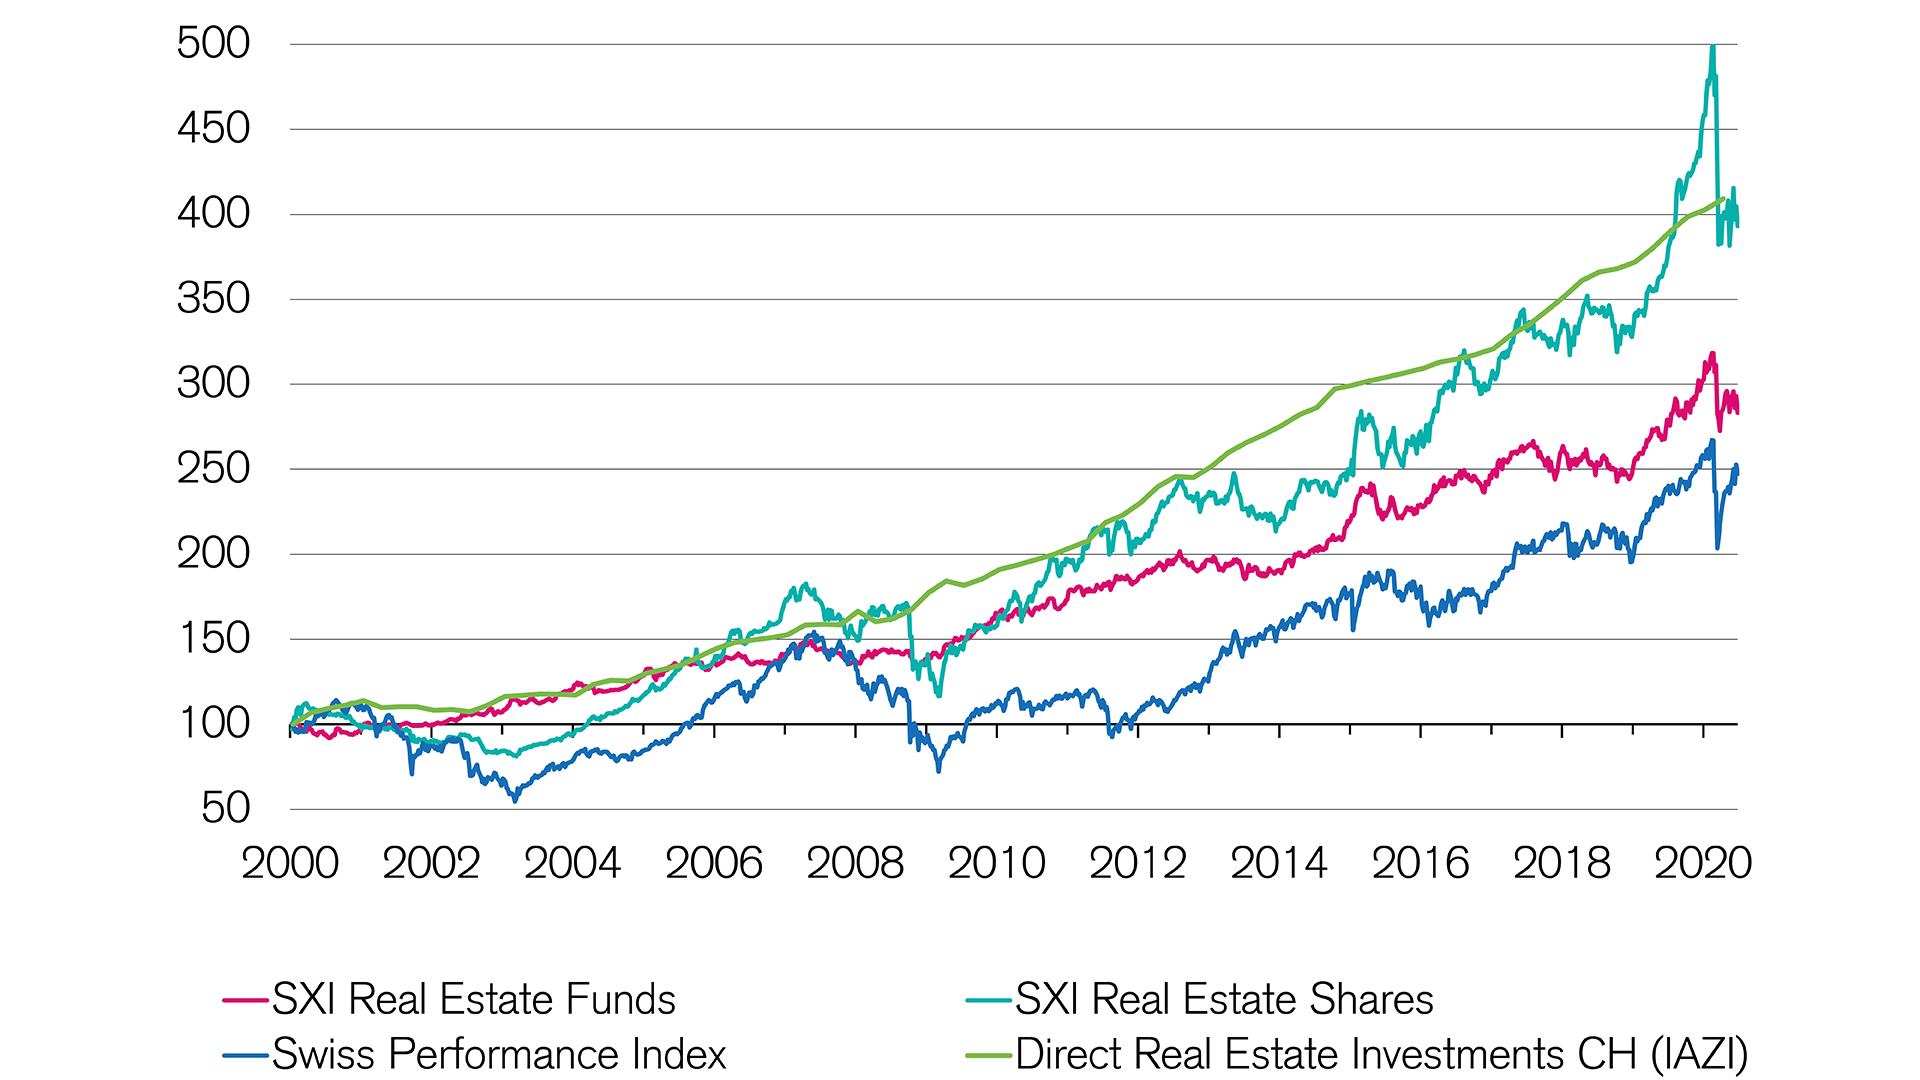 Comparison: Returns on real estate investments in Switzerland